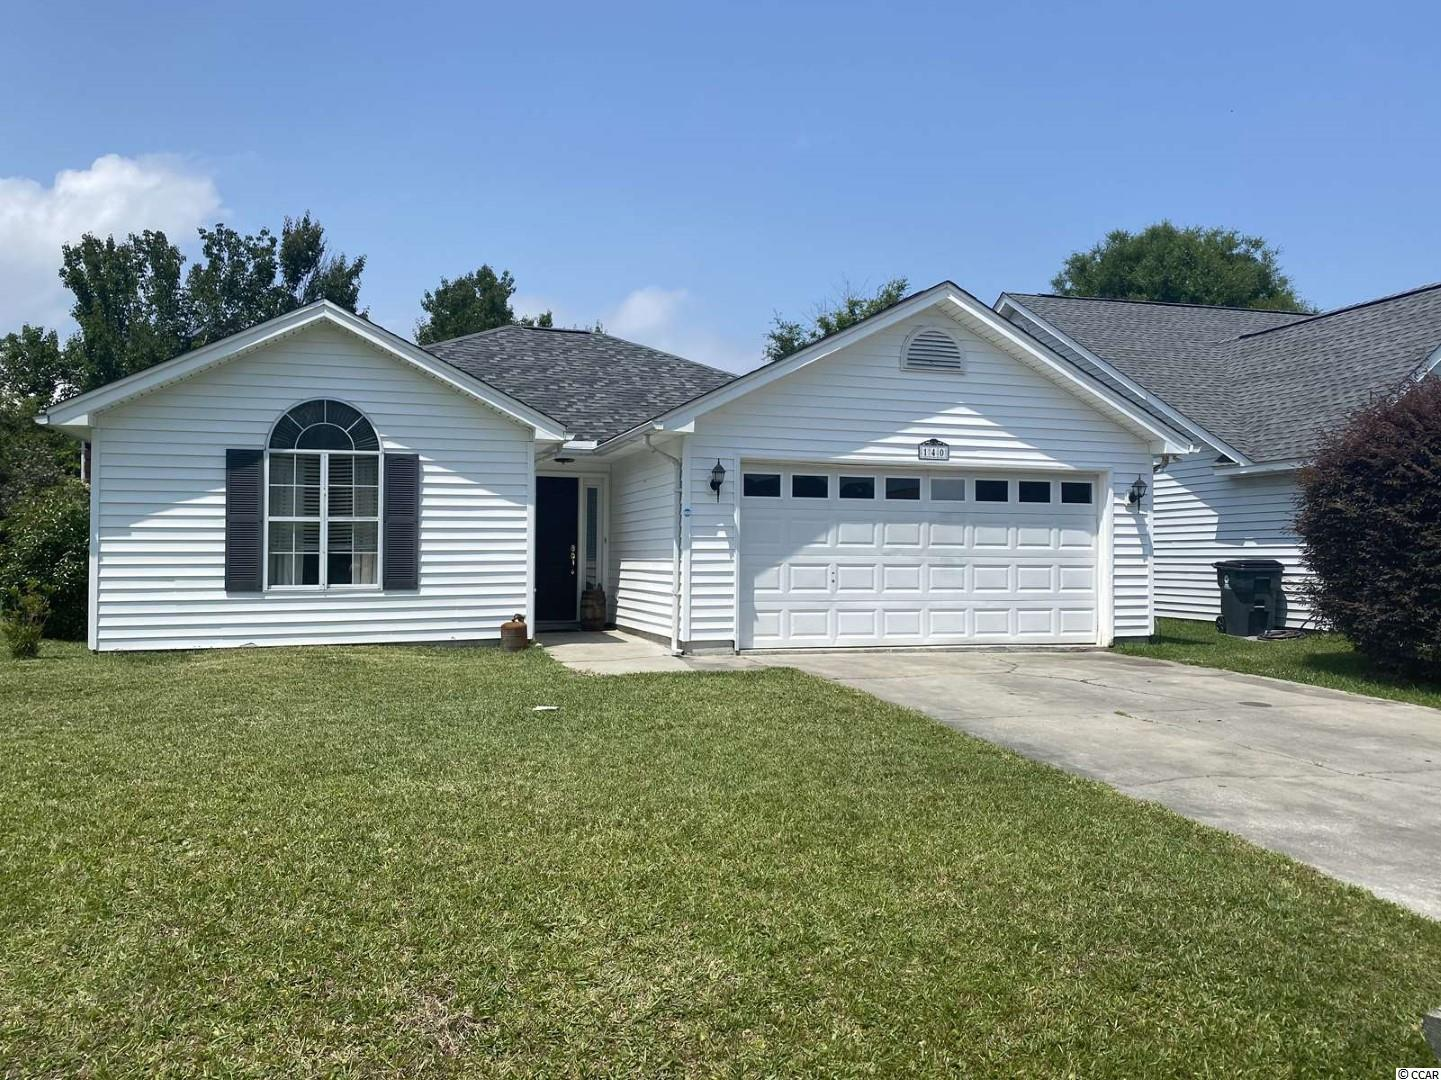 Great 3BR-2BA home in Glenn Meadows, Surfside Beach. Less than 2 miles to the ocean! This home has an open floor plan, large galley kitchen with a breakfast nook. Inside Pictures will be coming soon.